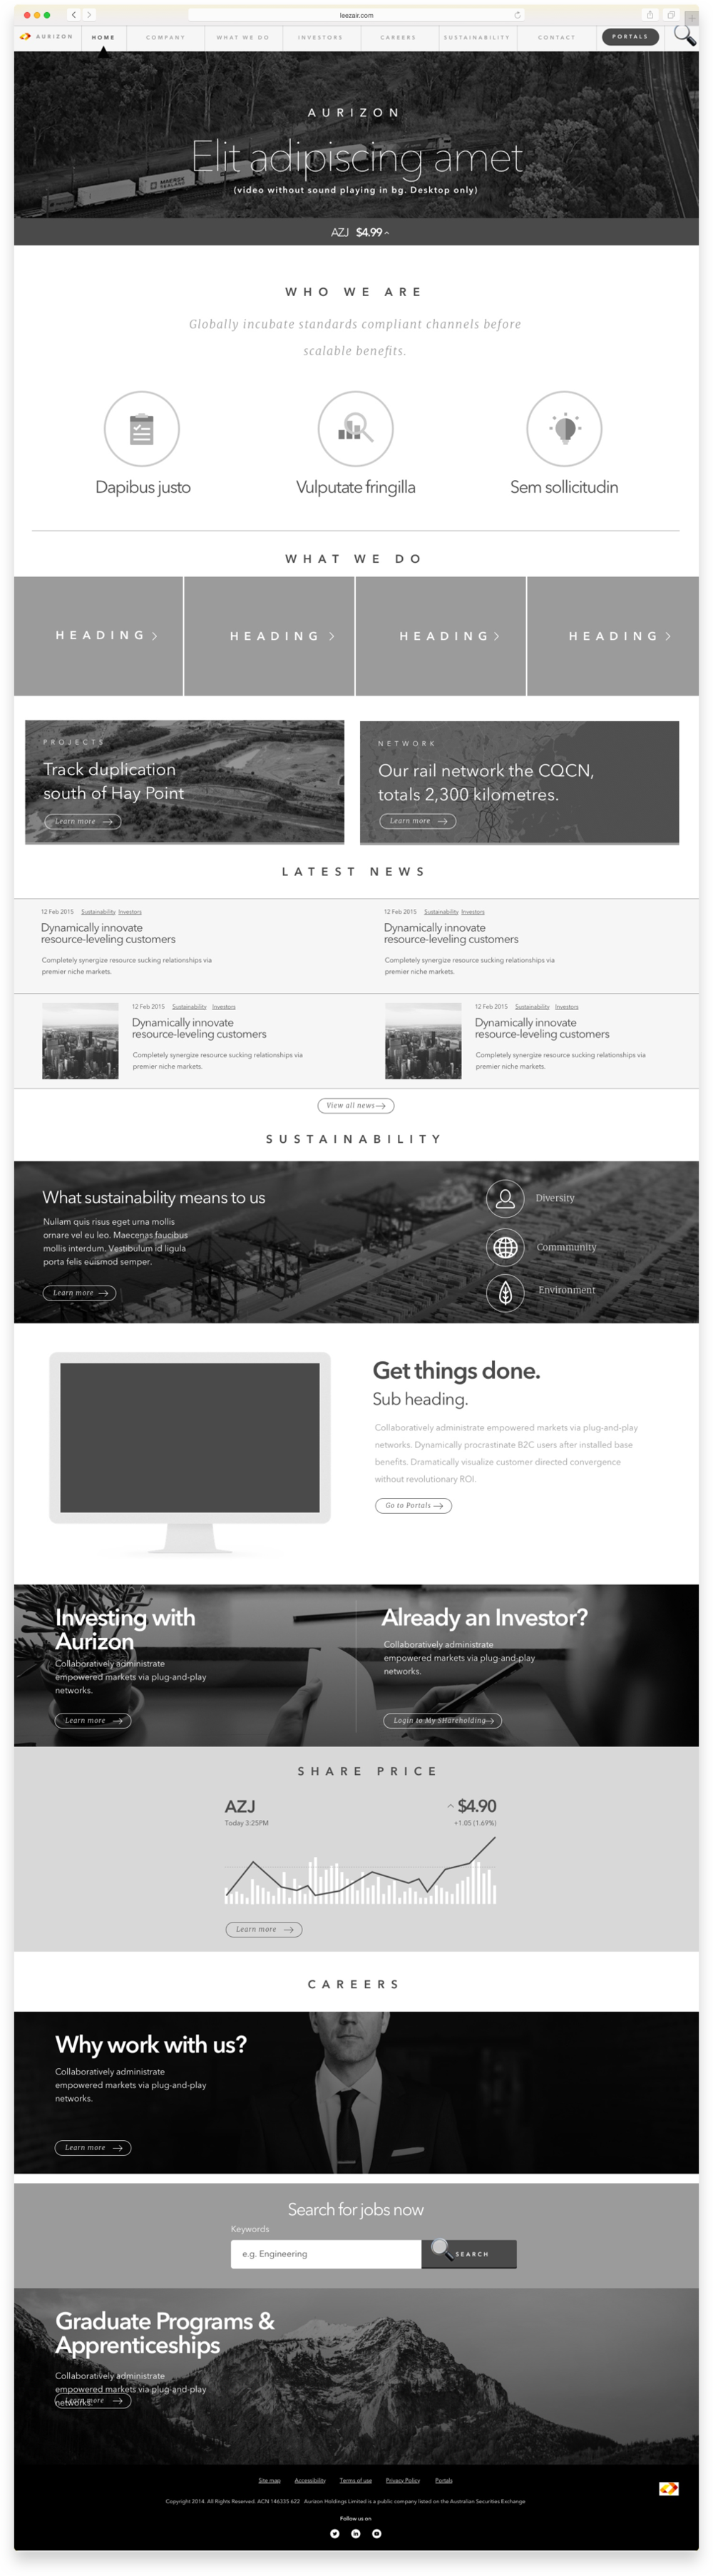 aurizon-website-home-window.png